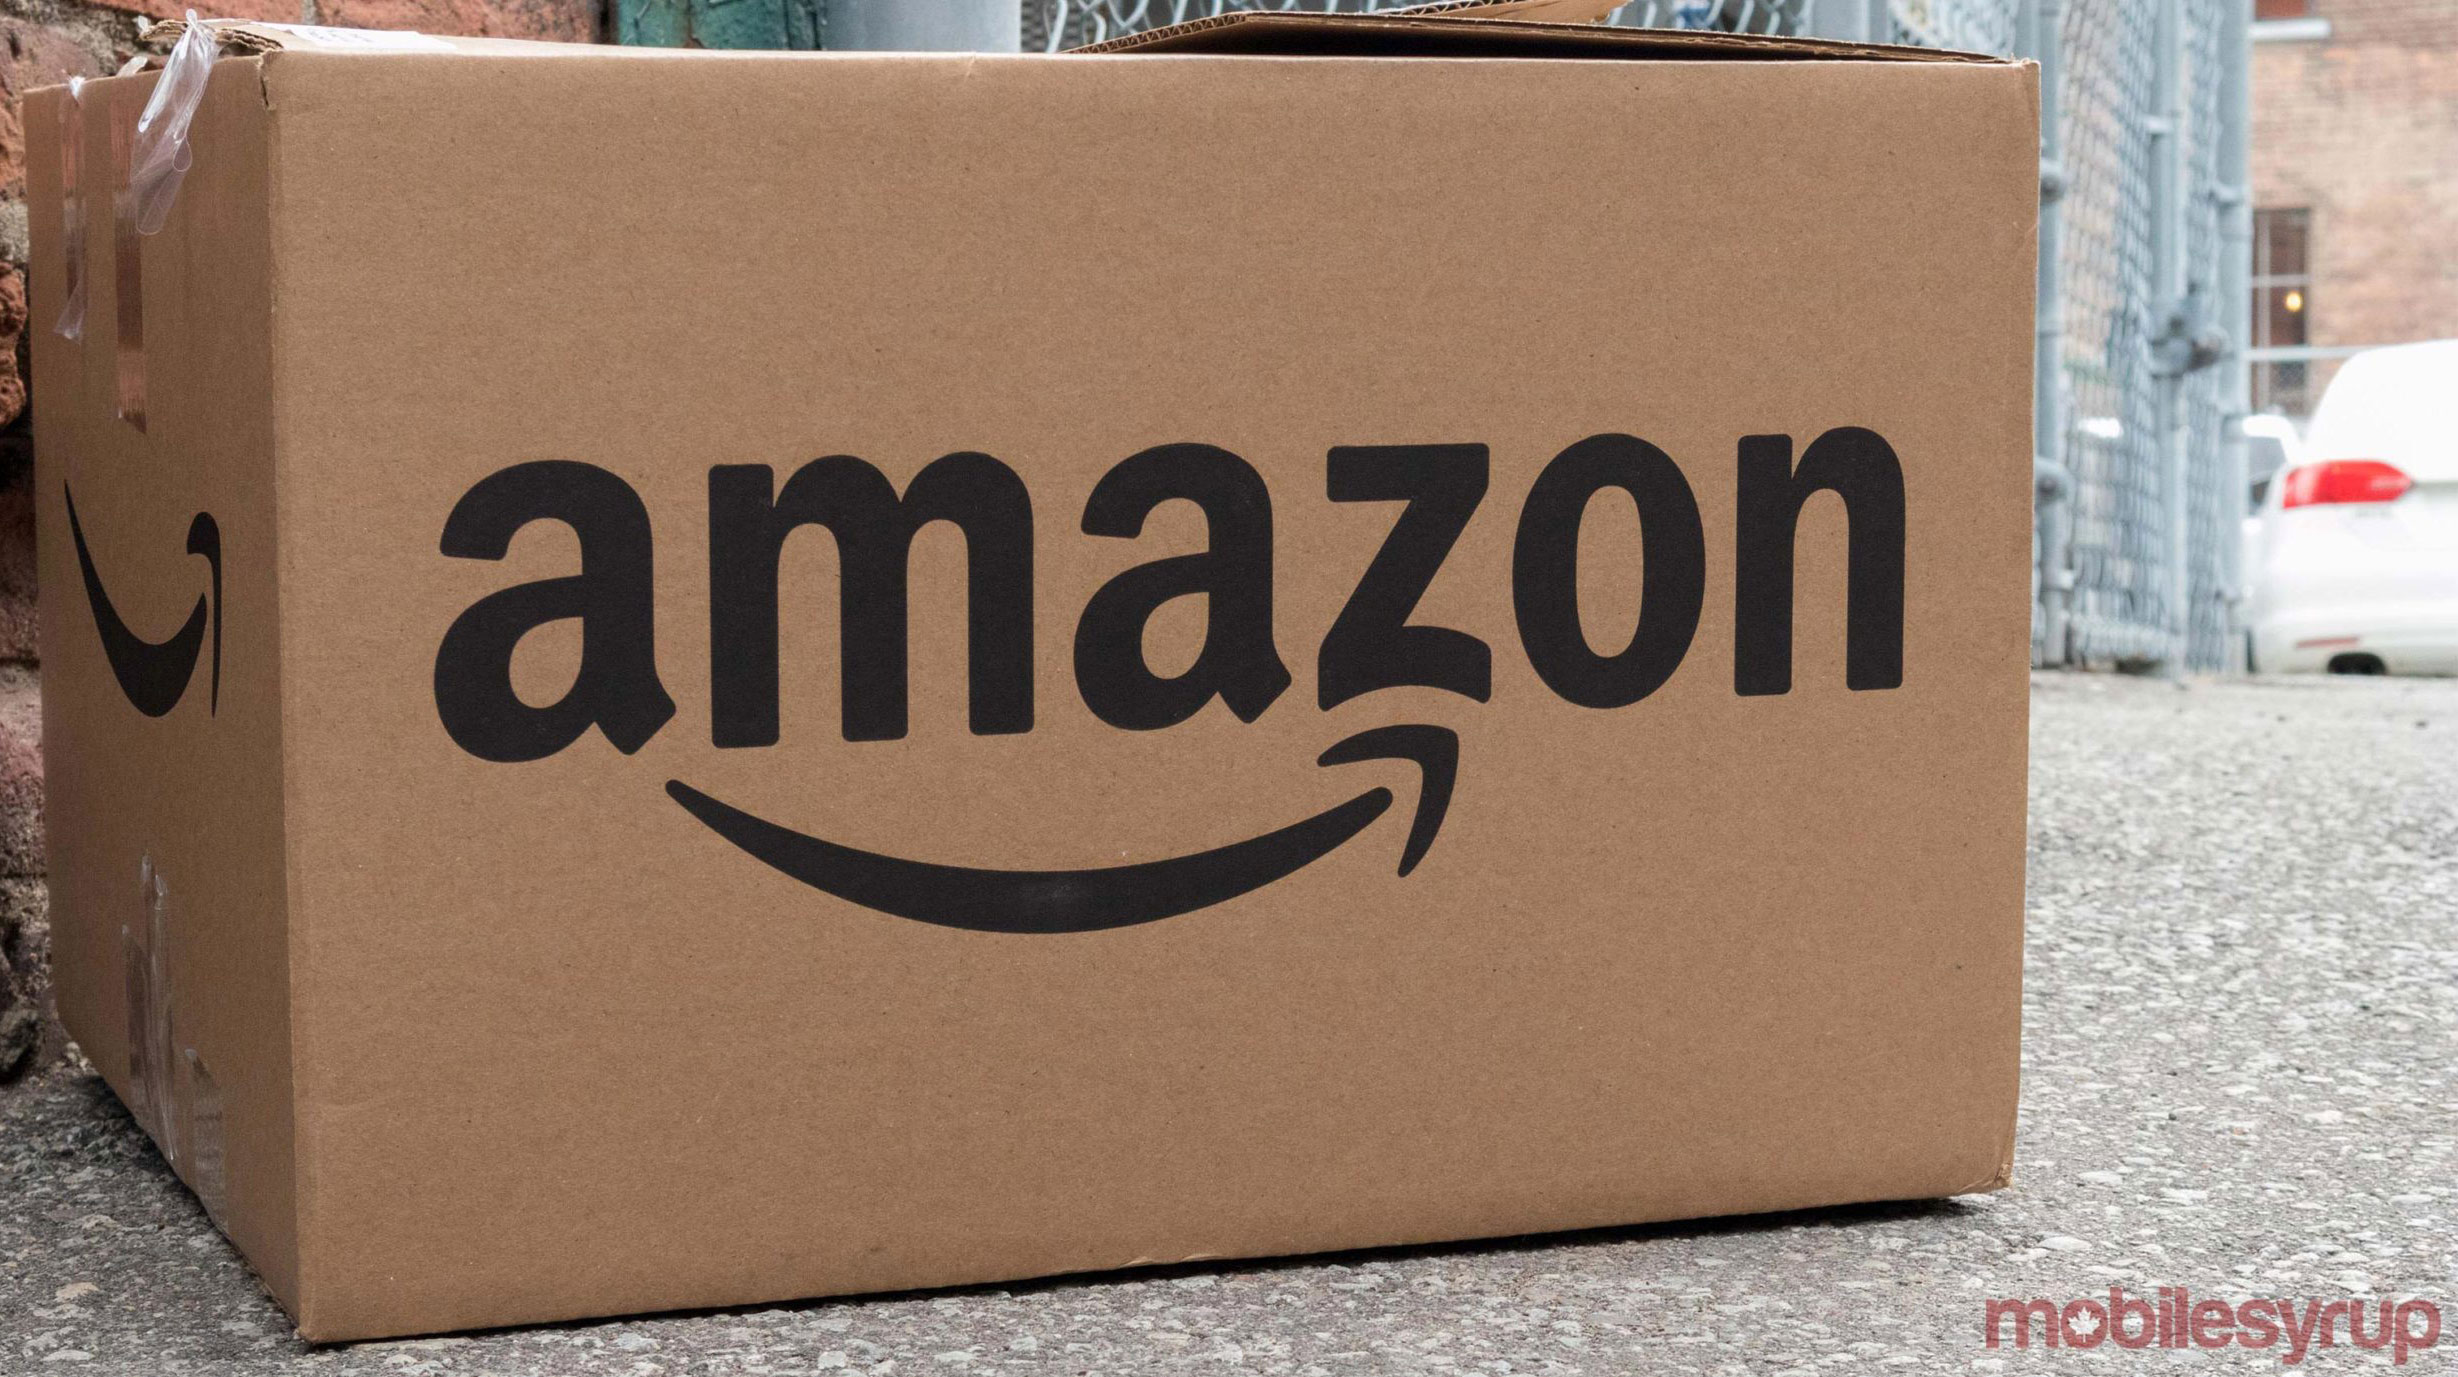 Amazon sees record-breaking holiday shopping season amid pandemic